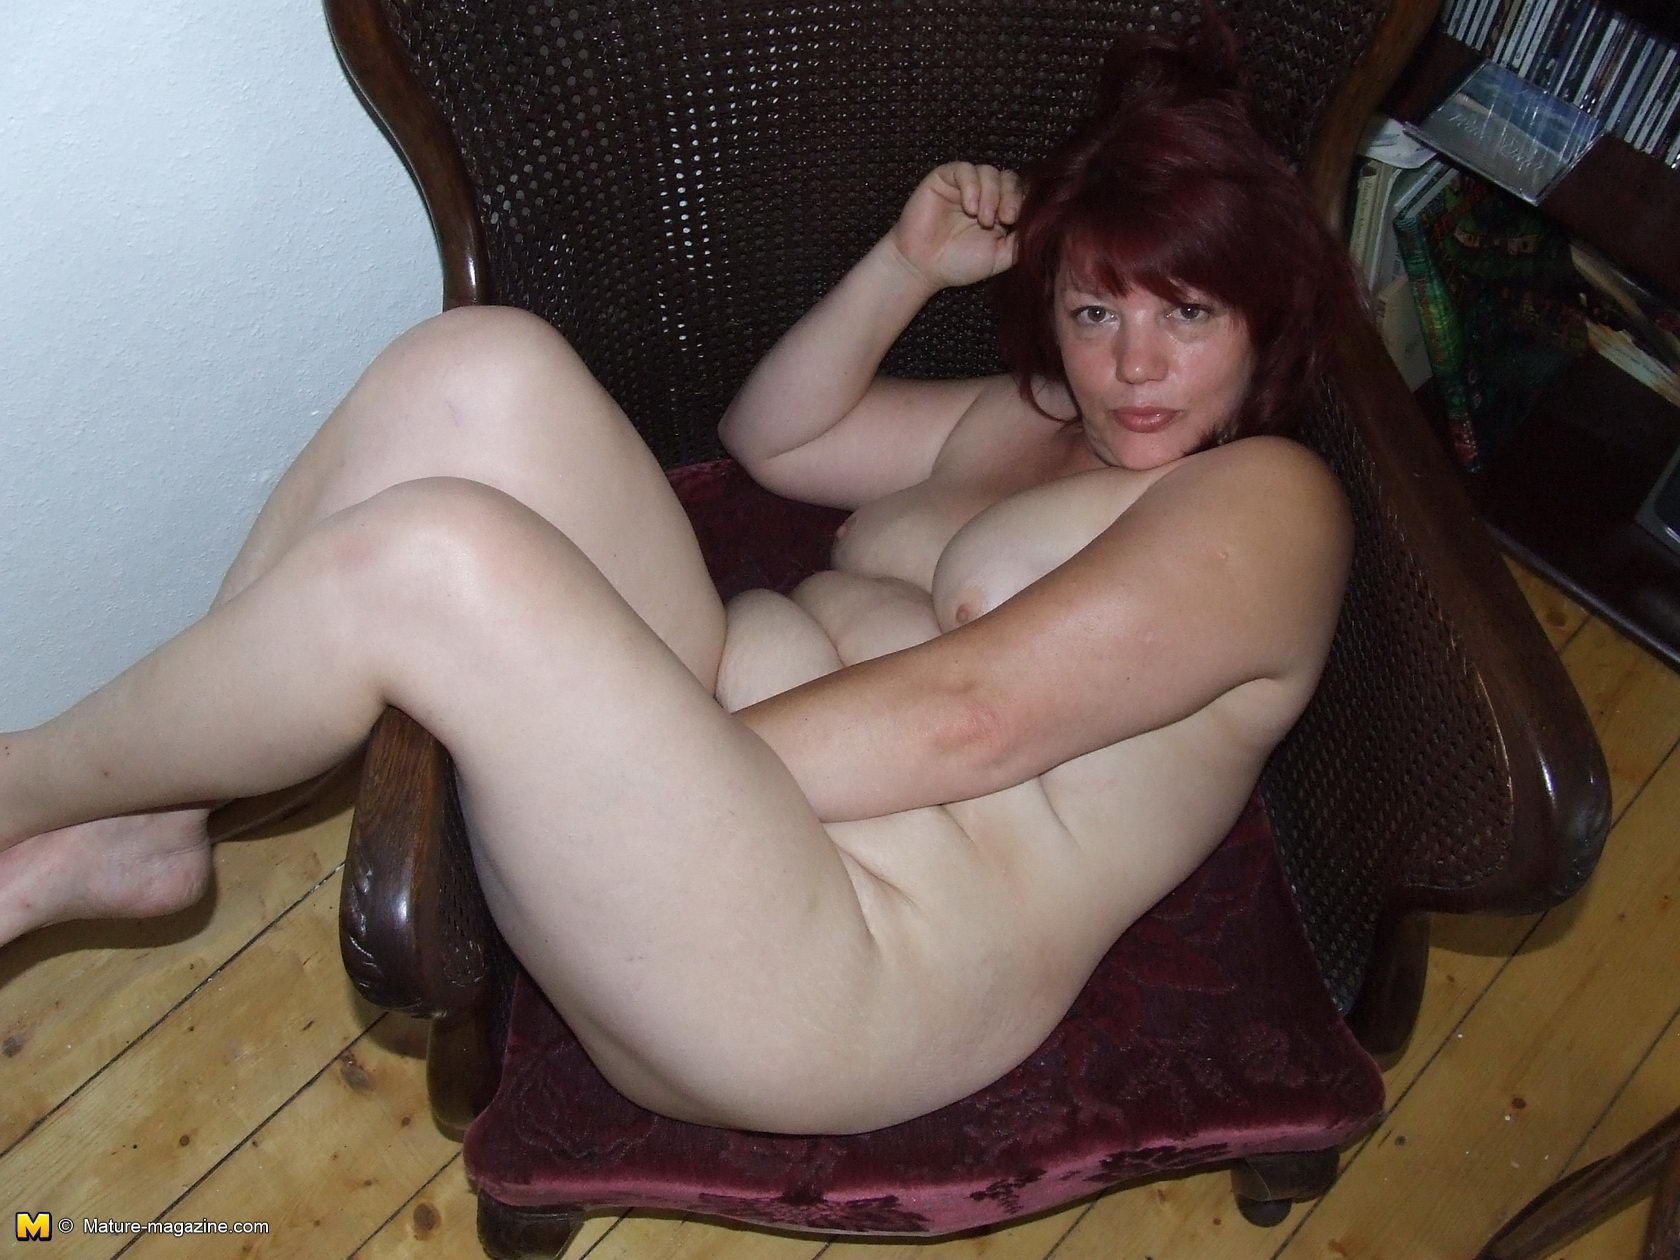 For that amateur housewife mature xxx